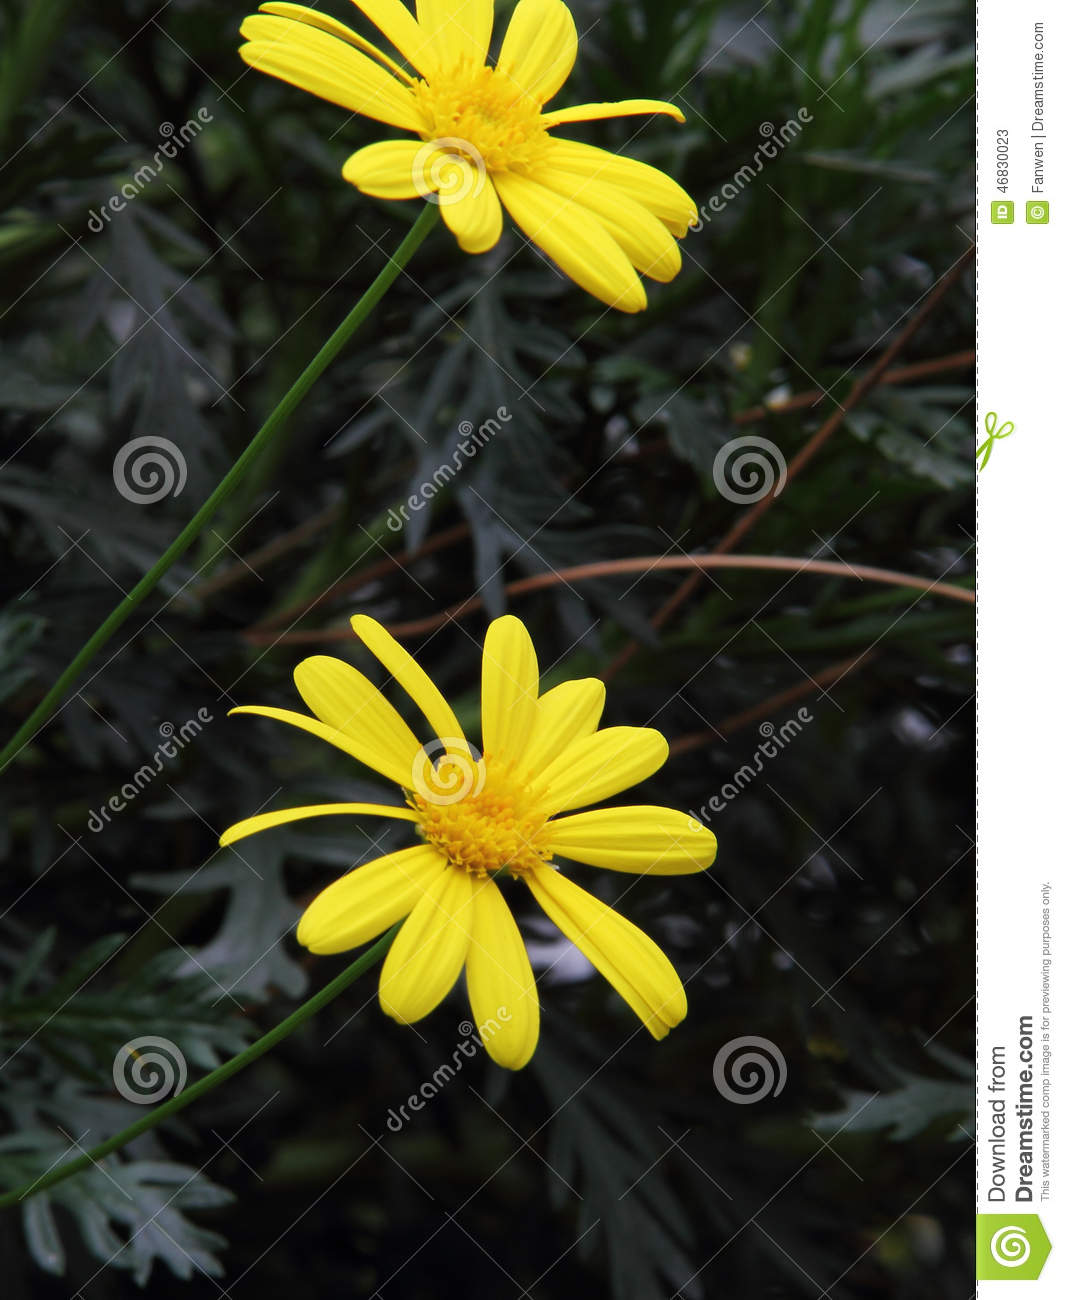 Yellow Garden Chrysanthemum (Argyranthemum Frutescens) Stock Photo.